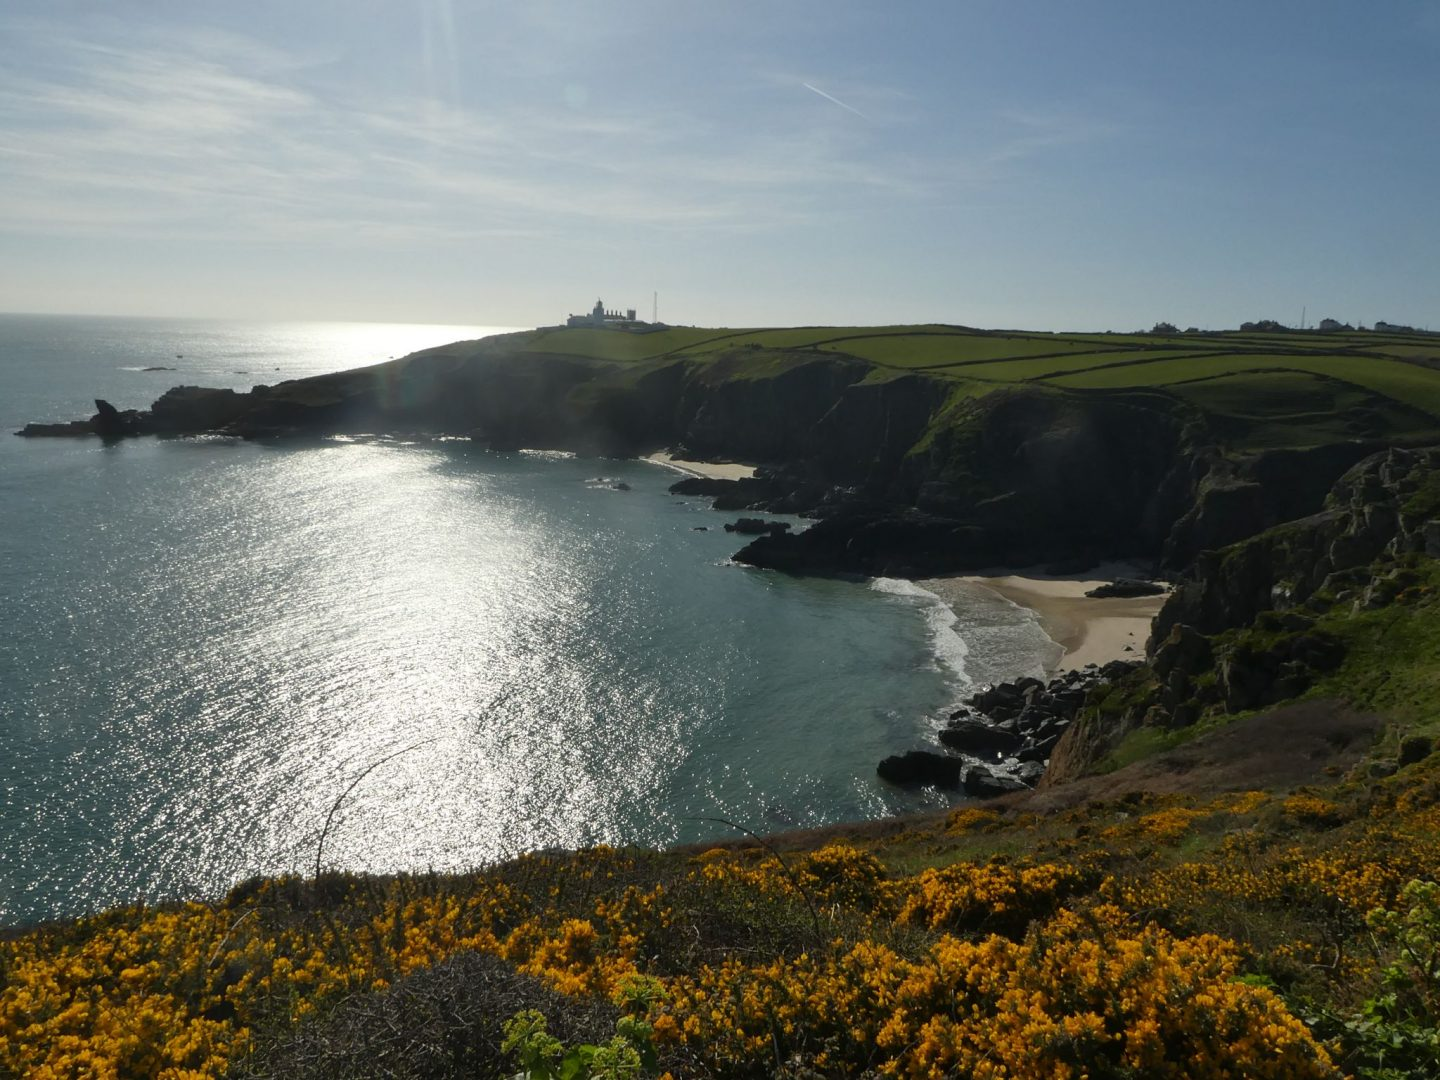 Cornwall (23 to 30 March 2019)